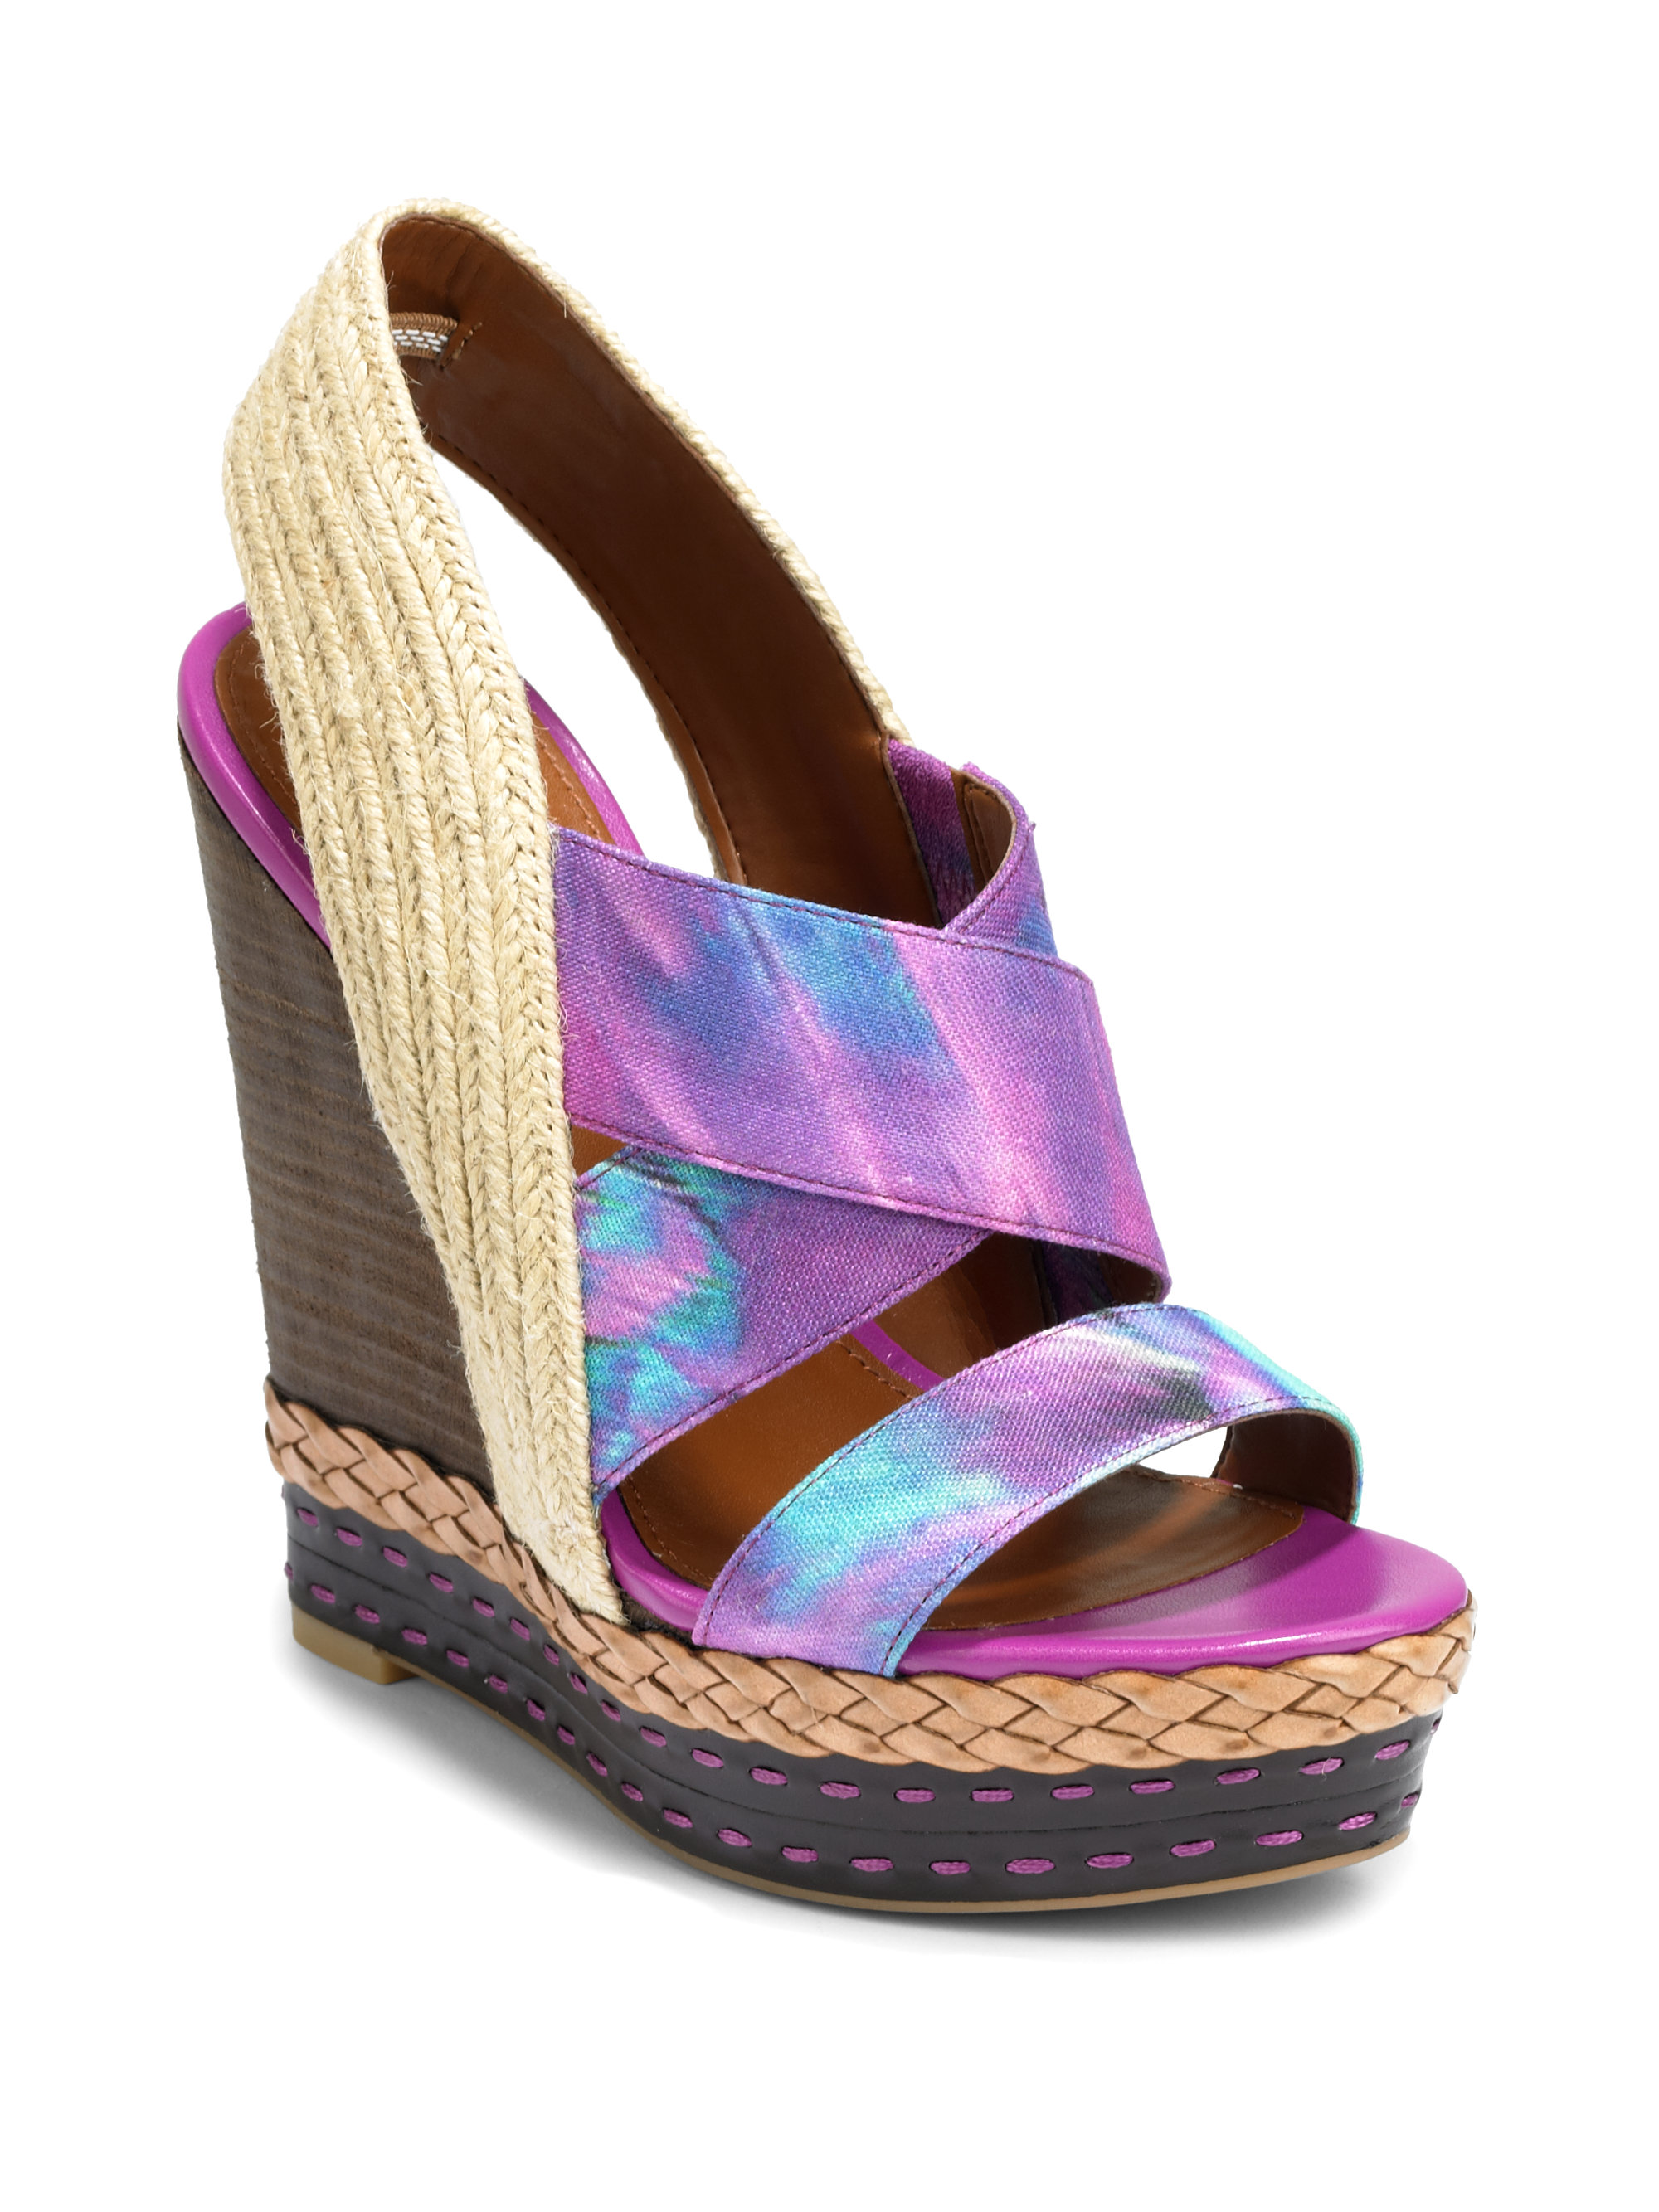 boutique 9 canvas leather slingback wedge sandals